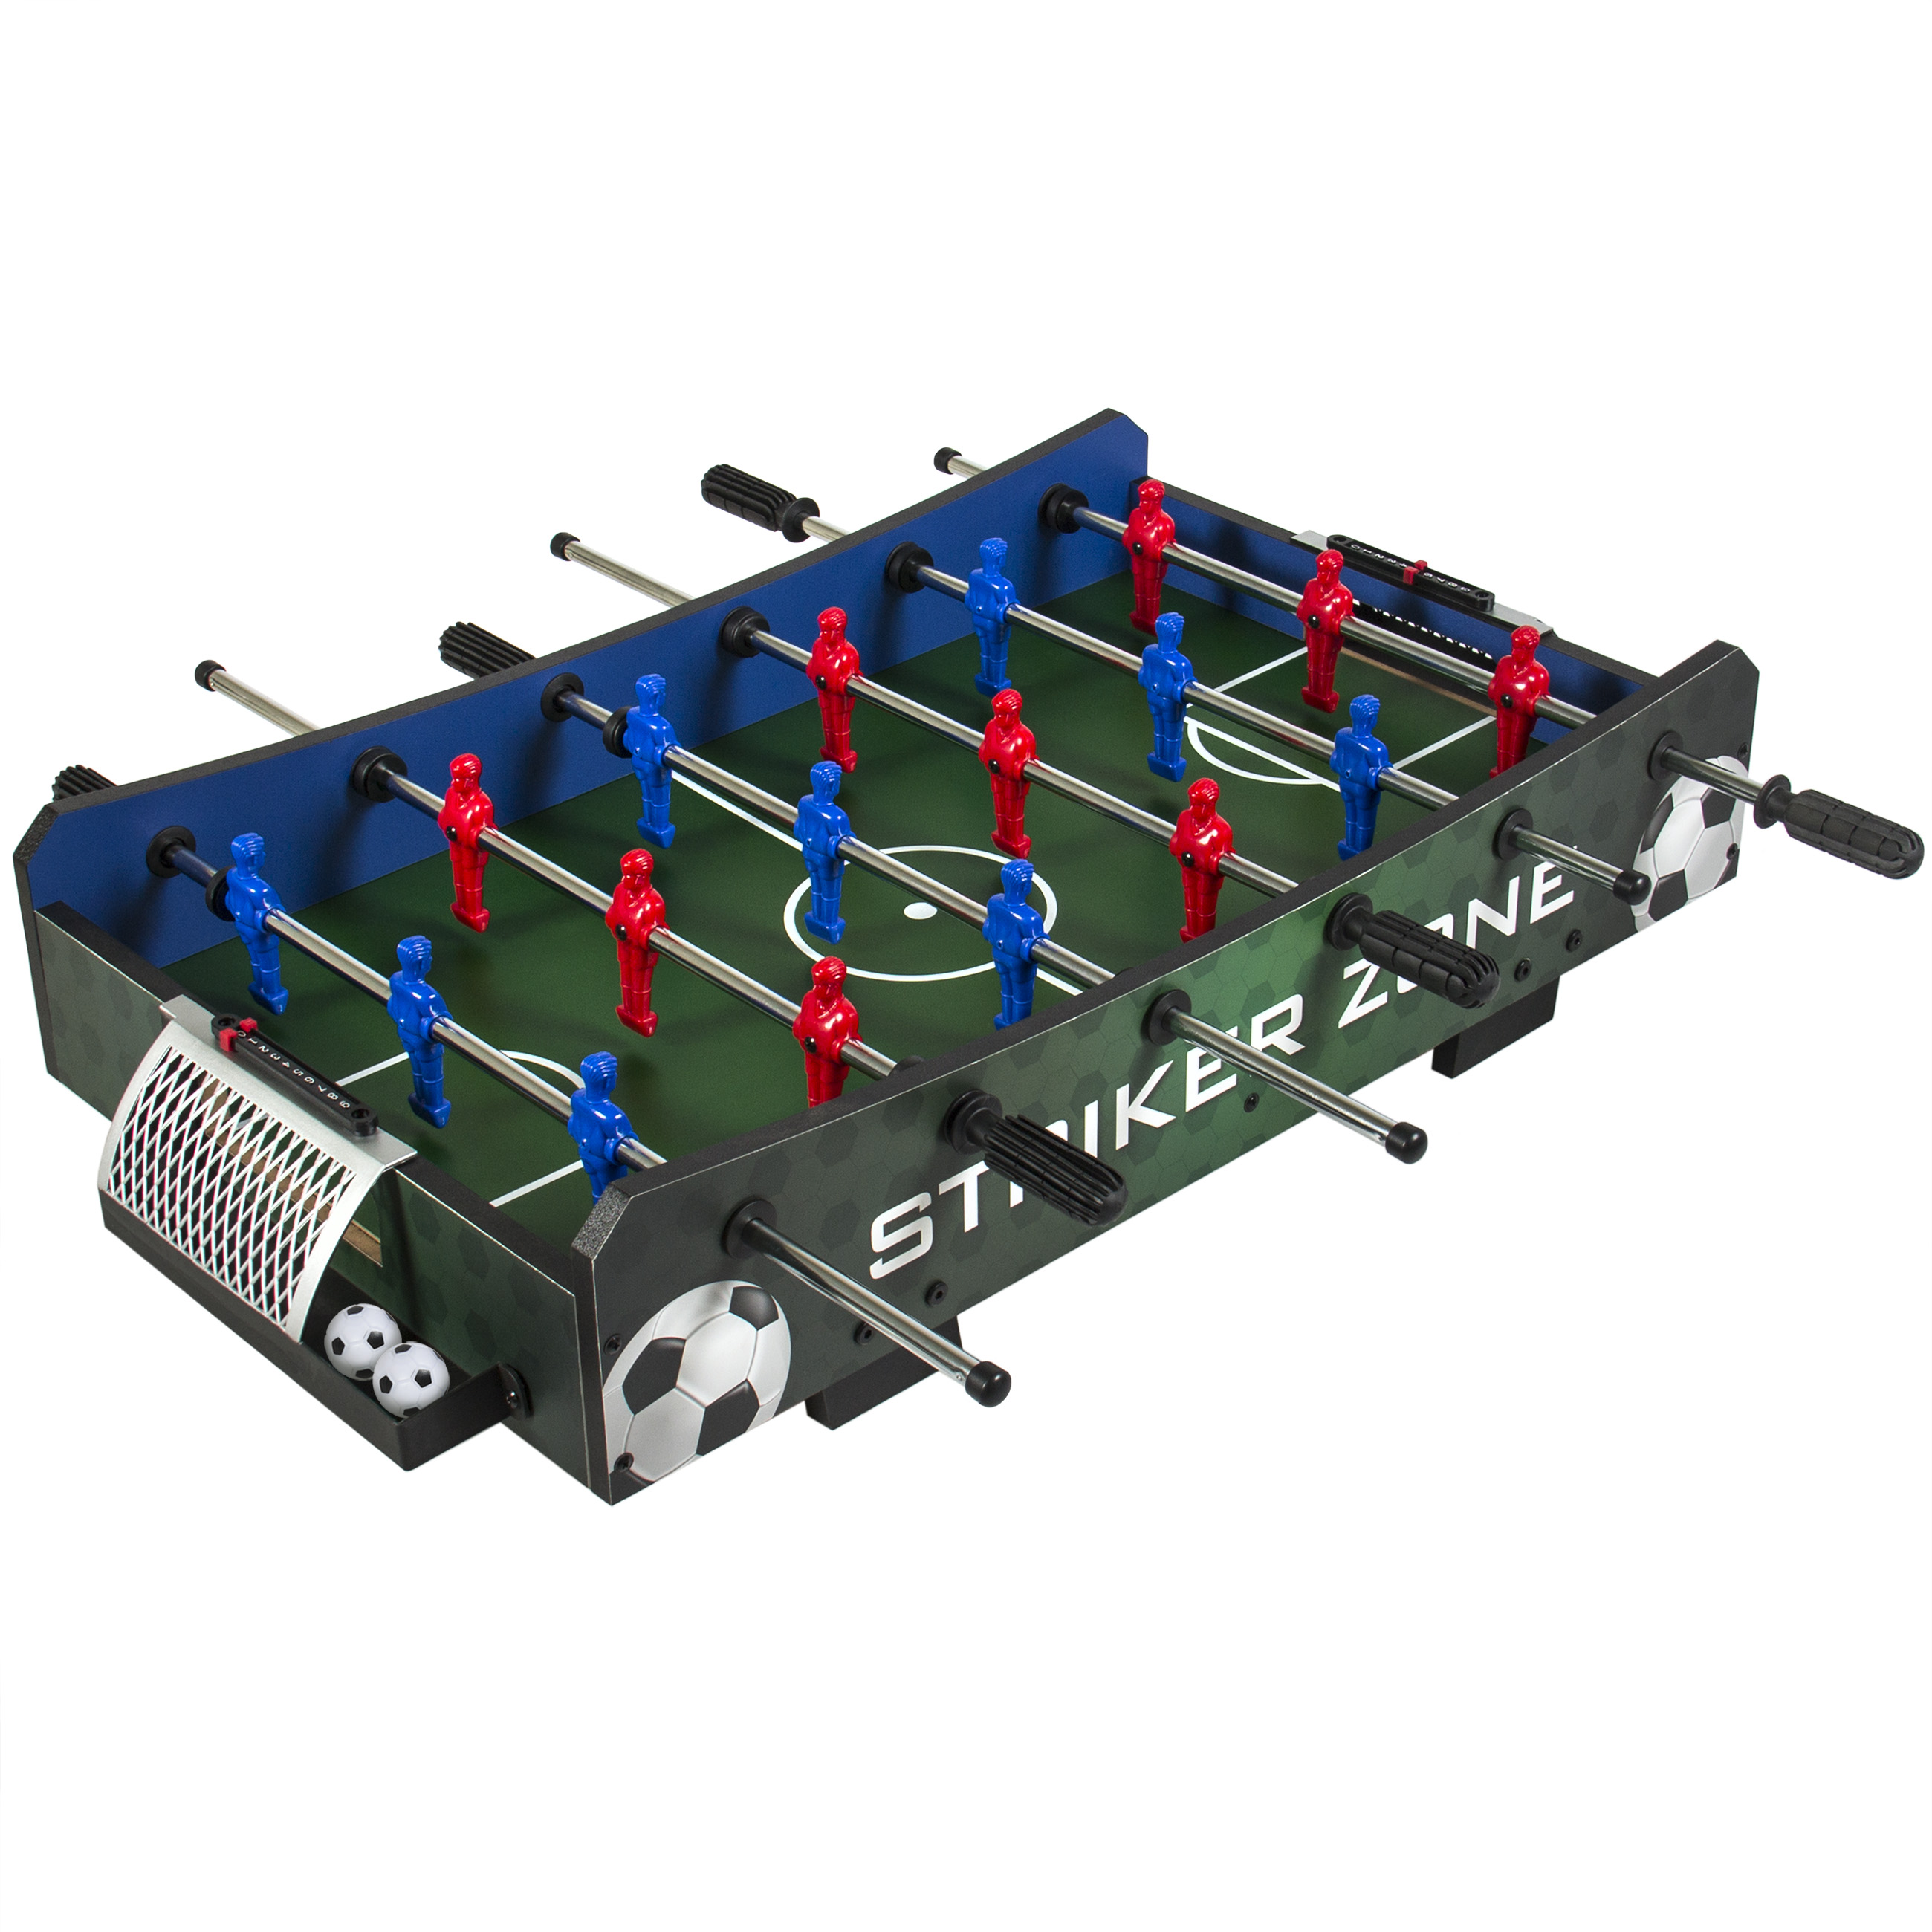 Best Choice Products Striker Zone Tabletop Soccer Foosball Table by